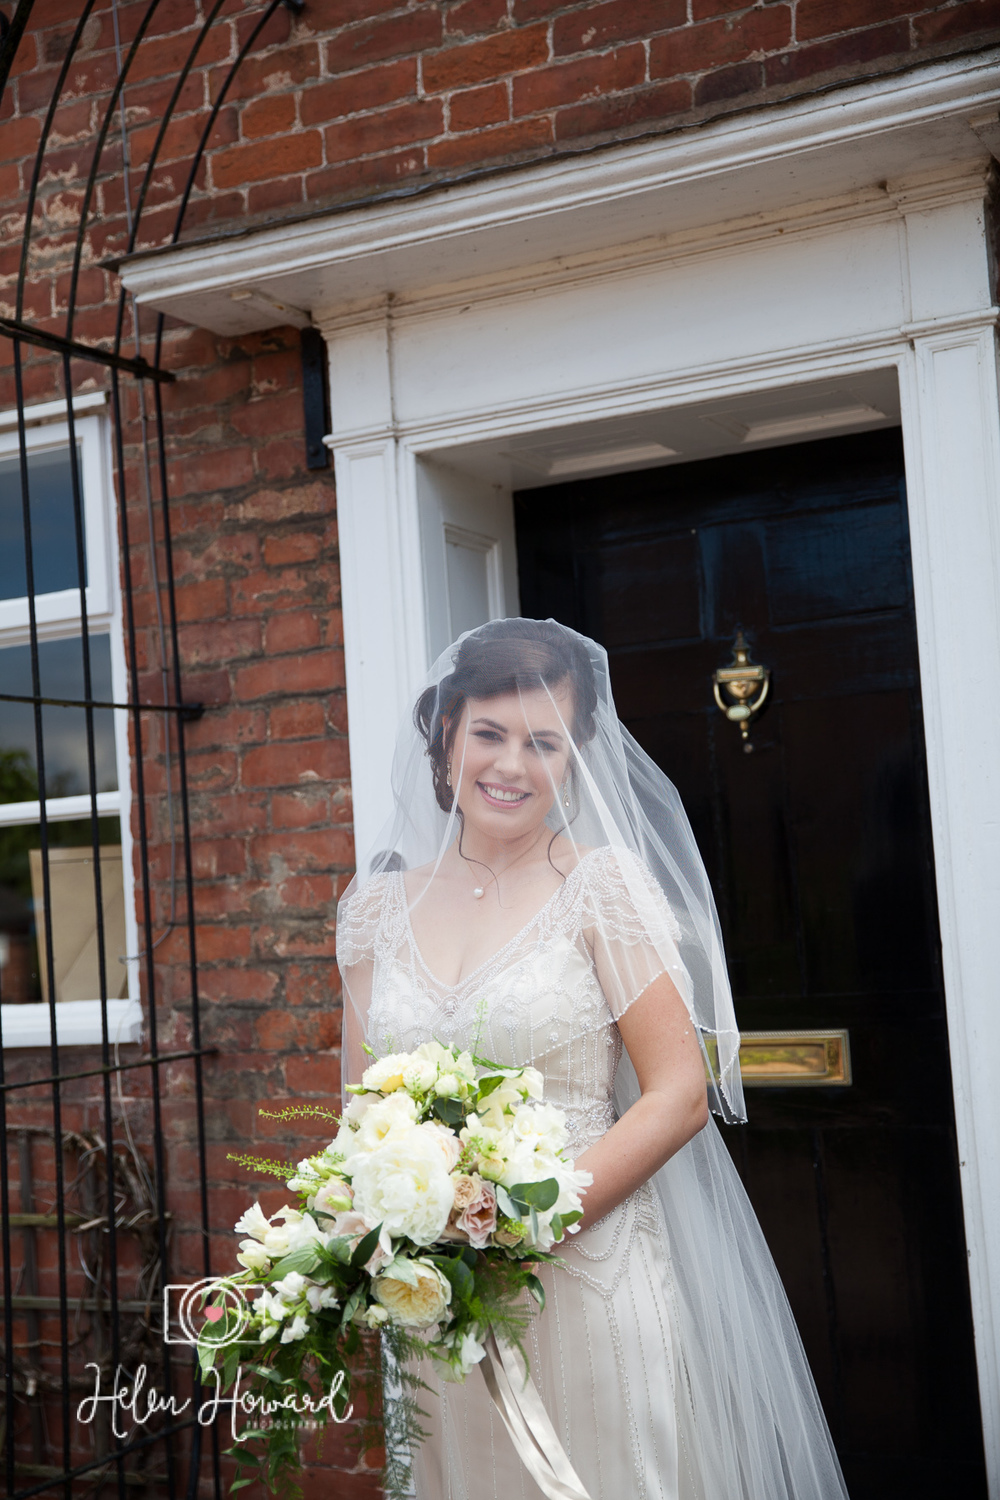 Helen Howard Photography Packington Moor Wedding-59.jpg